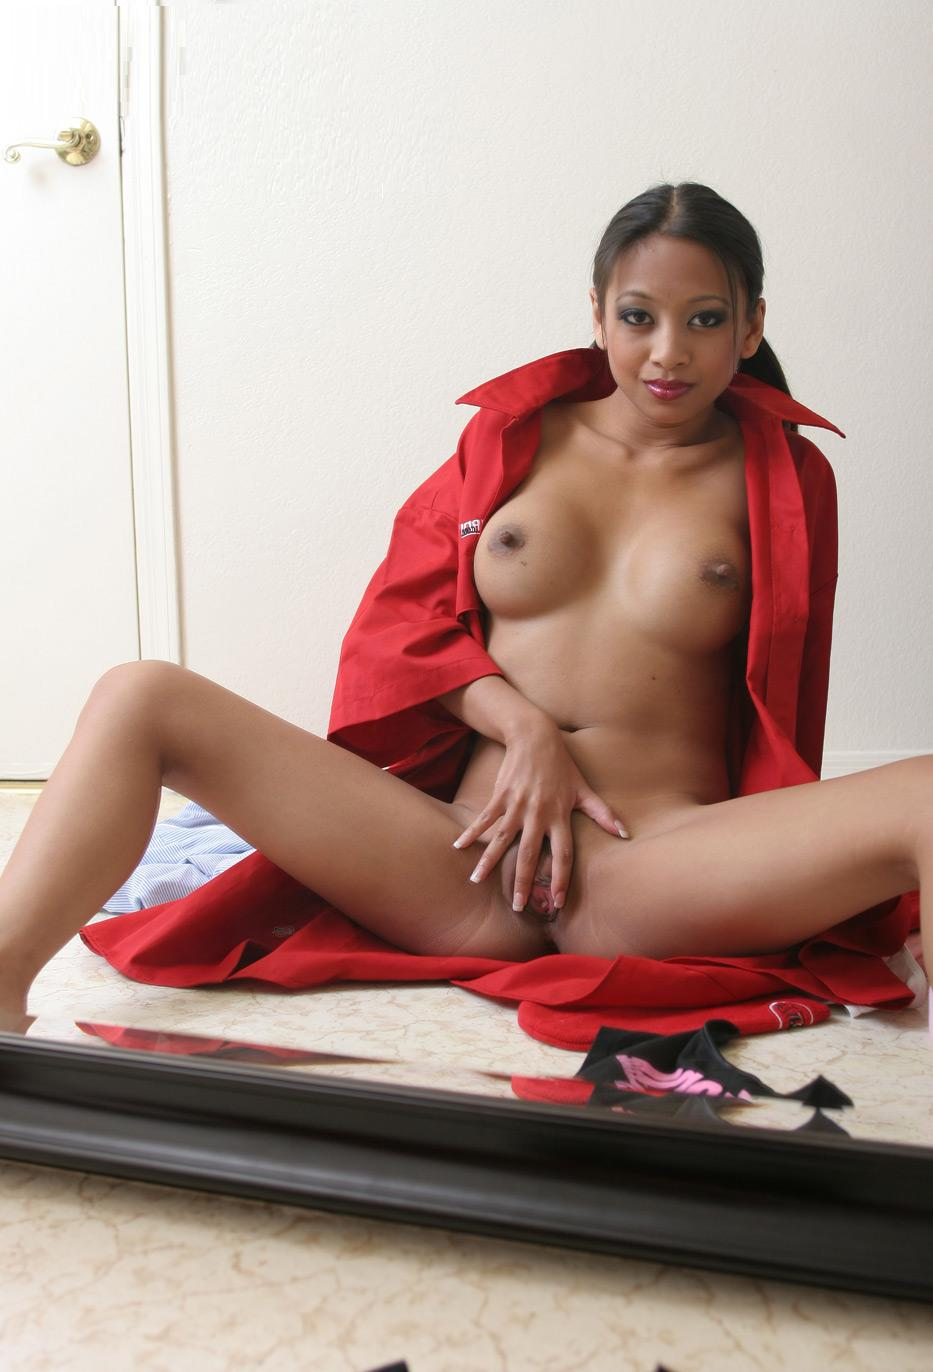 Very bad chick in red coat opens her pussy with fingers for intense pleasure